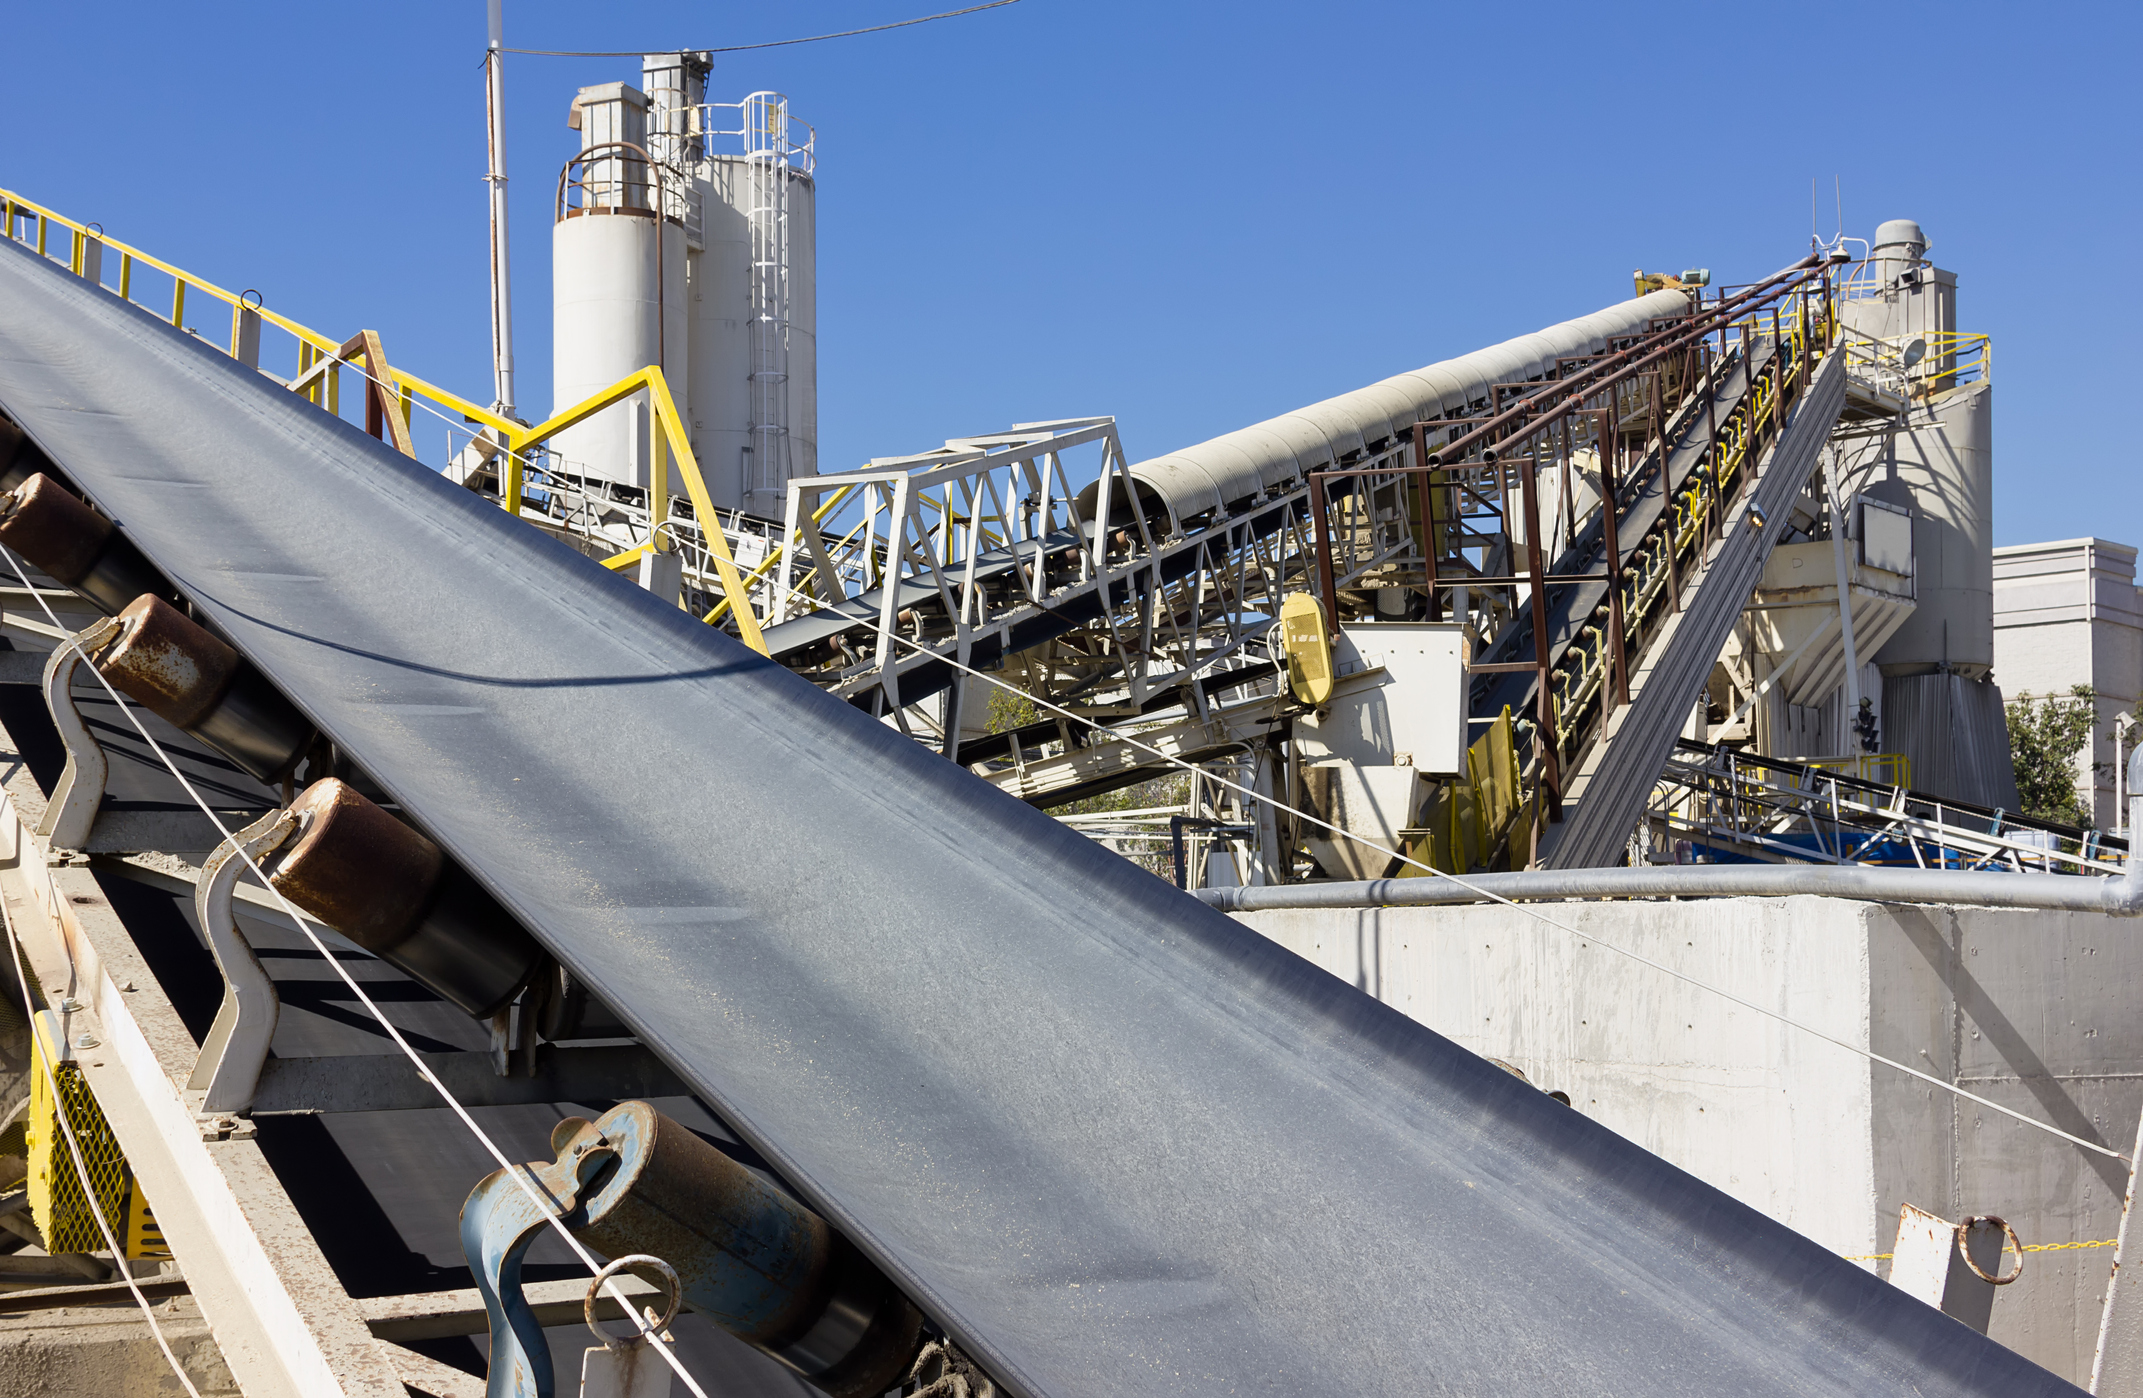 Multiple industrial conveyor belts are used at a processing site.